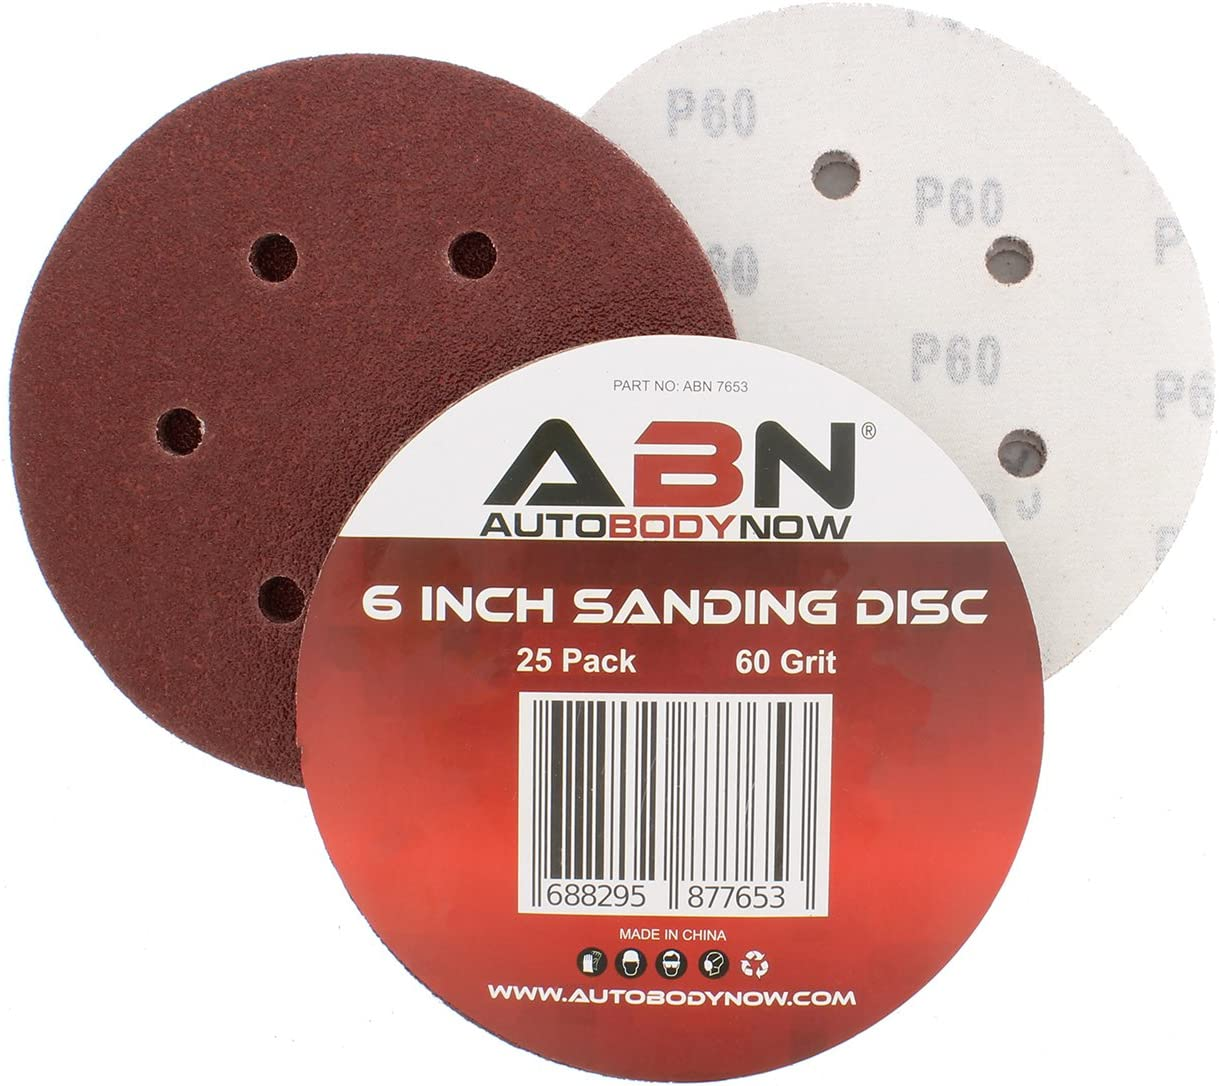 Non-Woven Finishing Disc 12000 RPM Aluminum Oxide 119 Units 2 in Disc Dia